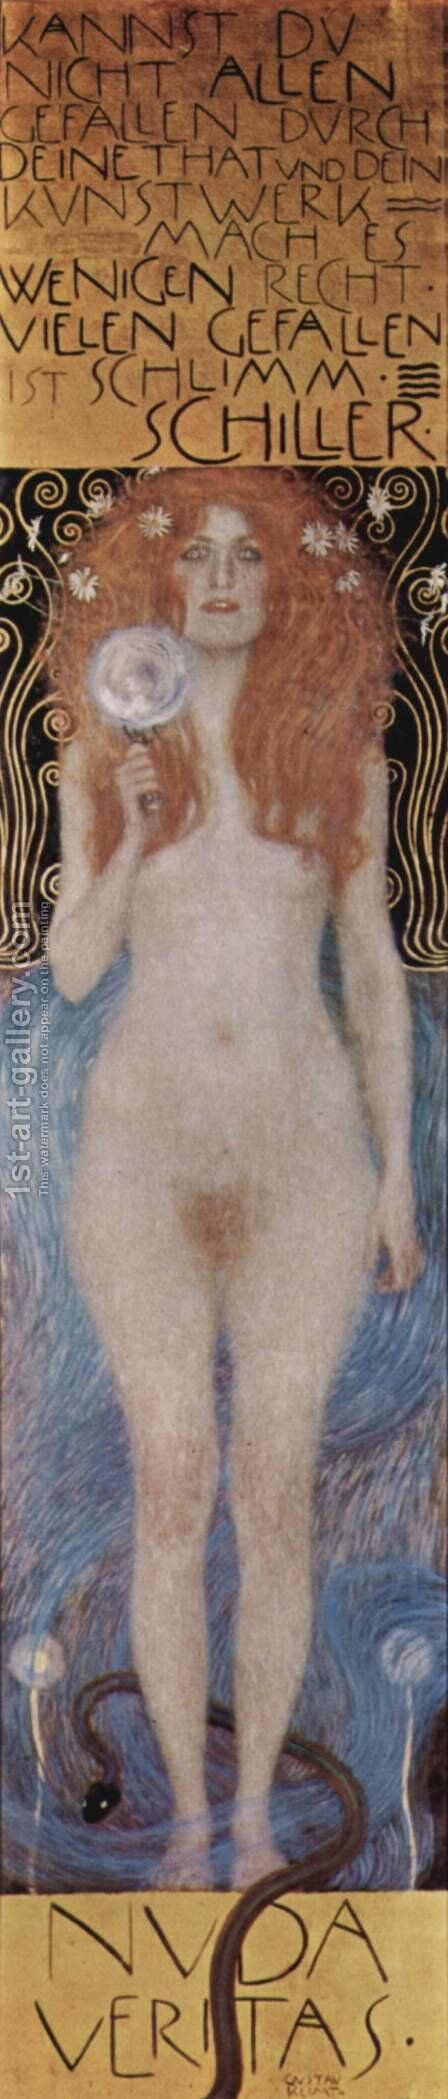 Nuda Veritas by Gustav Klimt - Reproduction Oil Painting